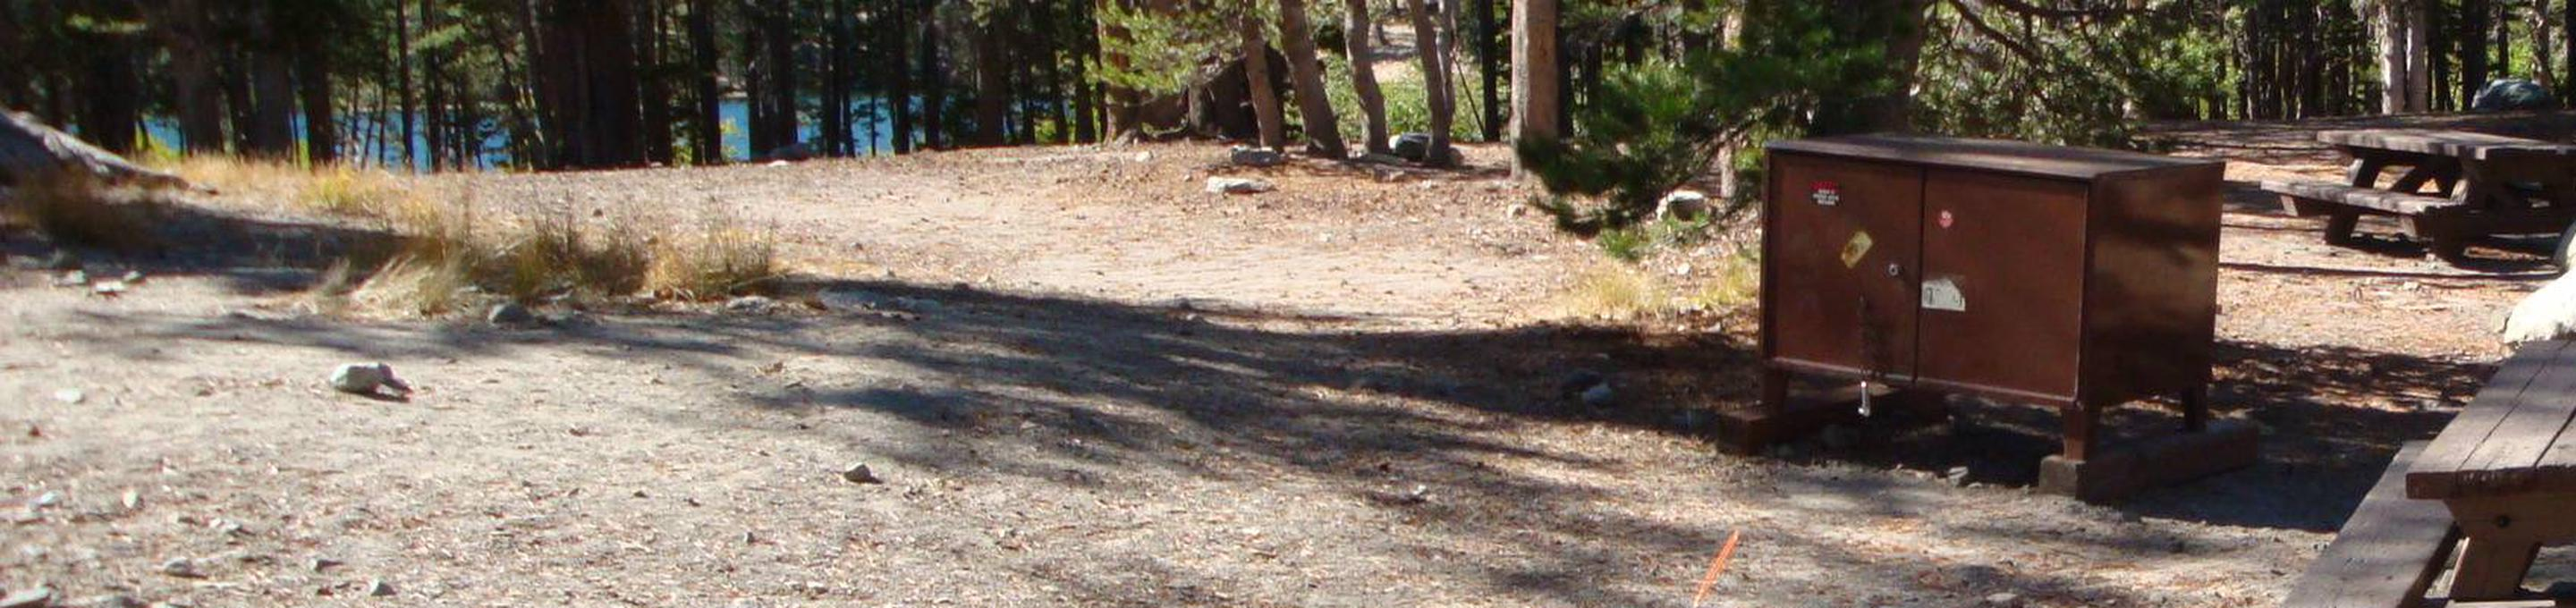 Lake Mary Campground SITE 1515